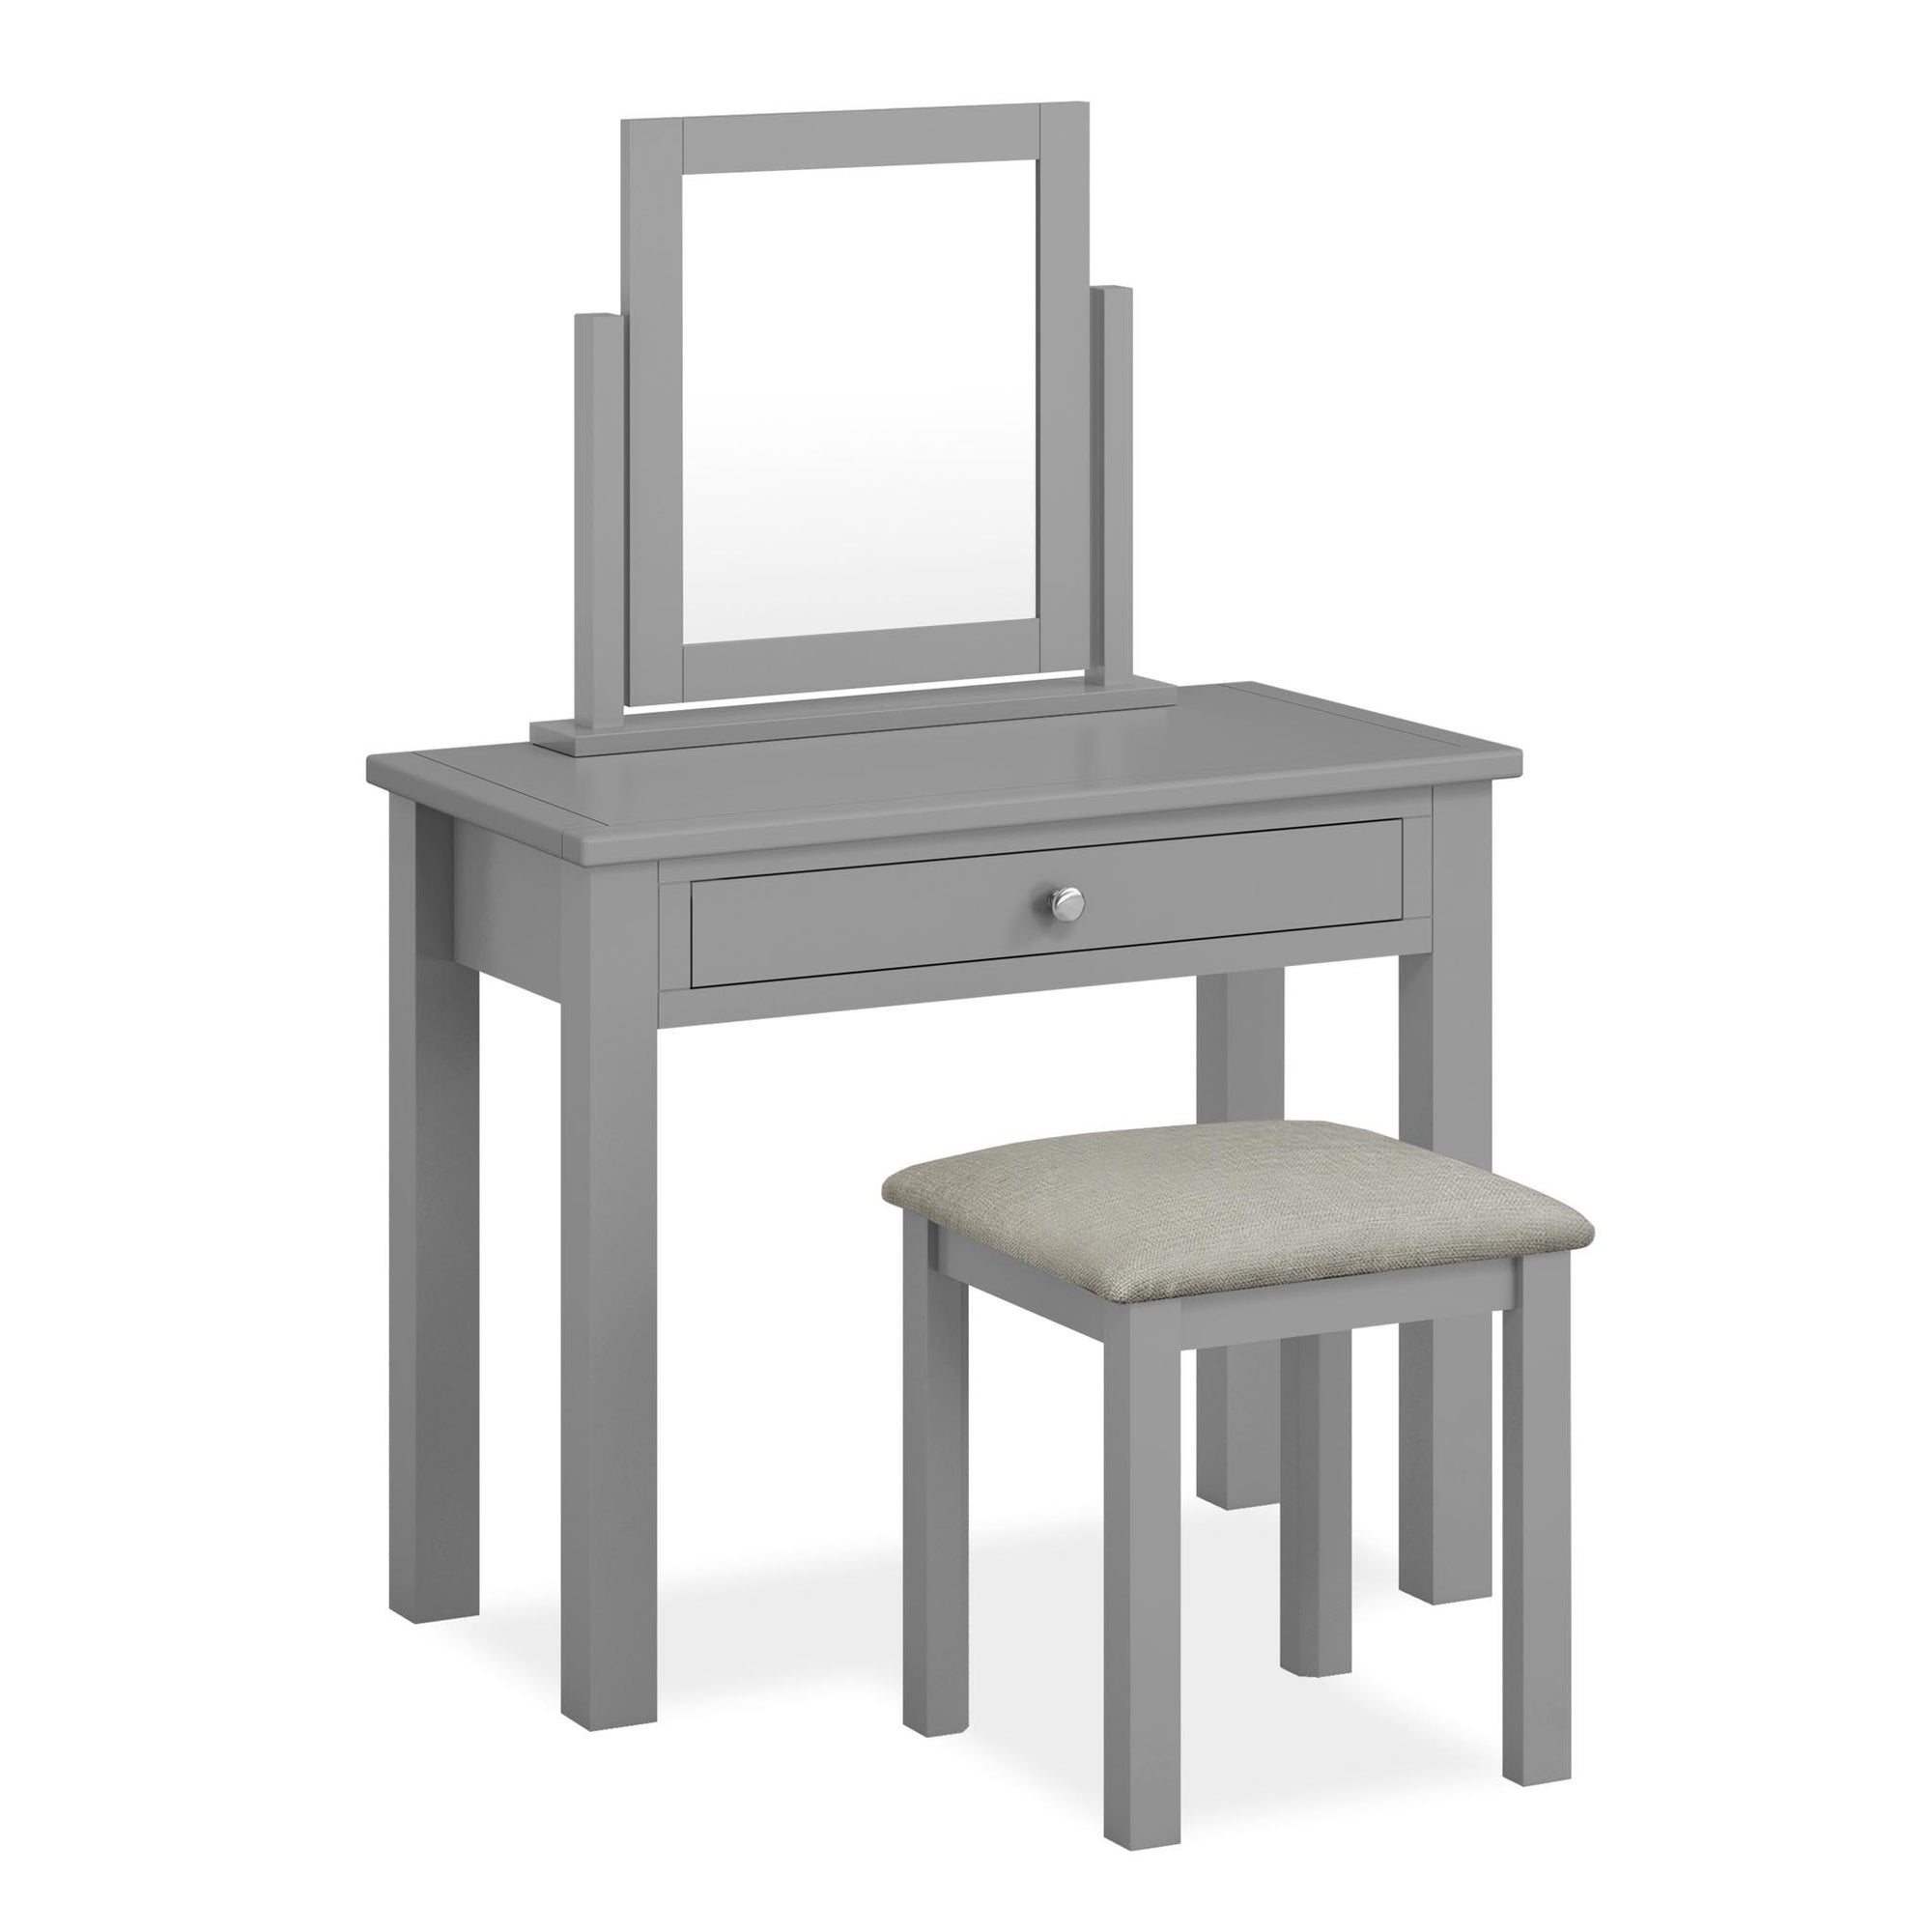 The Cornish Grey Wooden Dressing Table Set with Stool and Vanity Mirror from Roseland Furniture